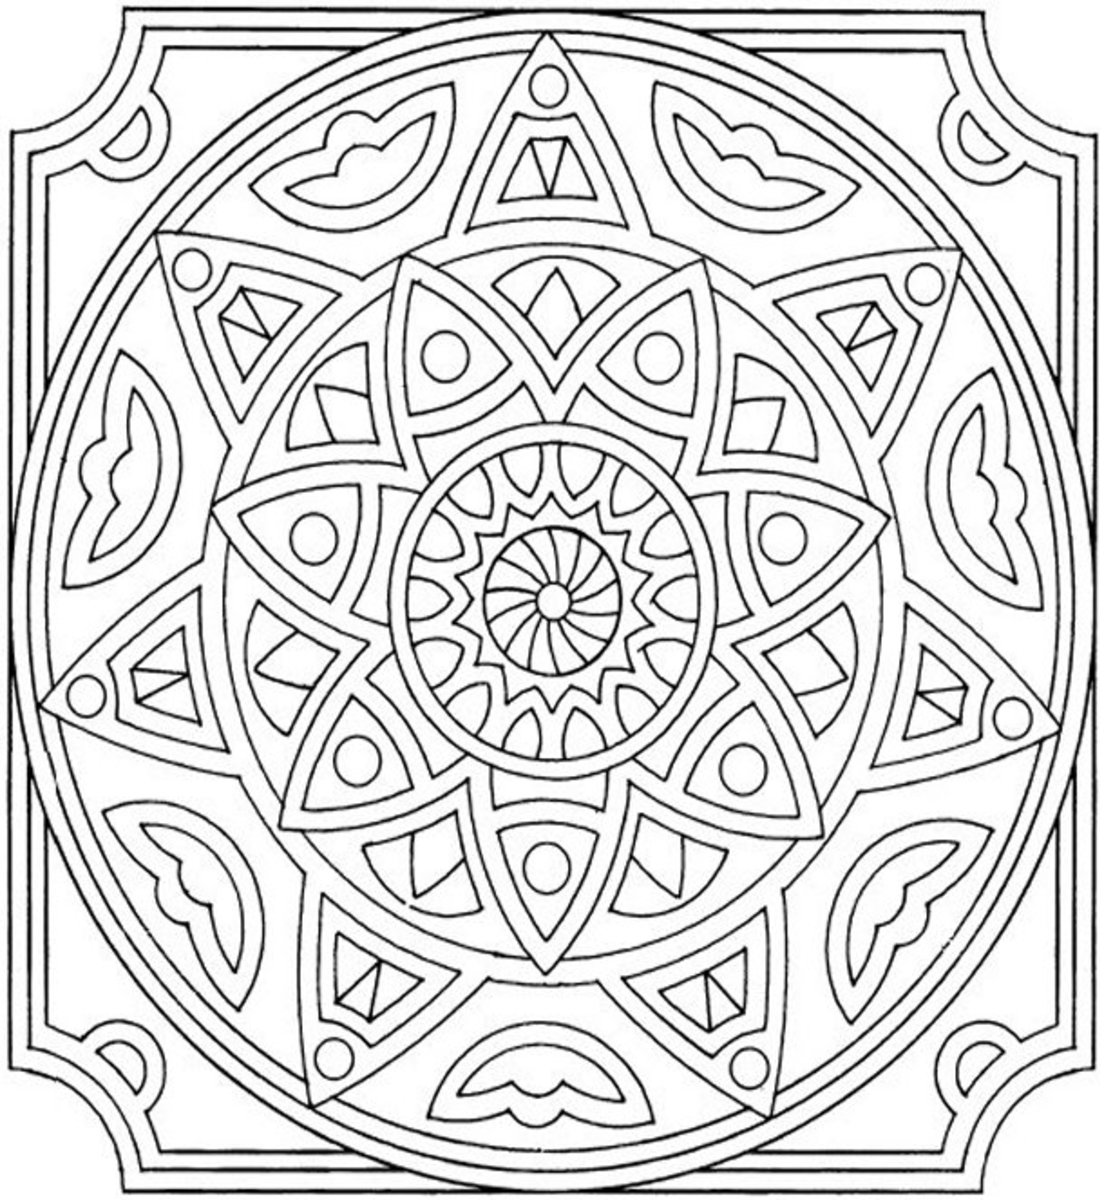 Mandala Pattern A1- Colouring Pictures to print-and-color online.